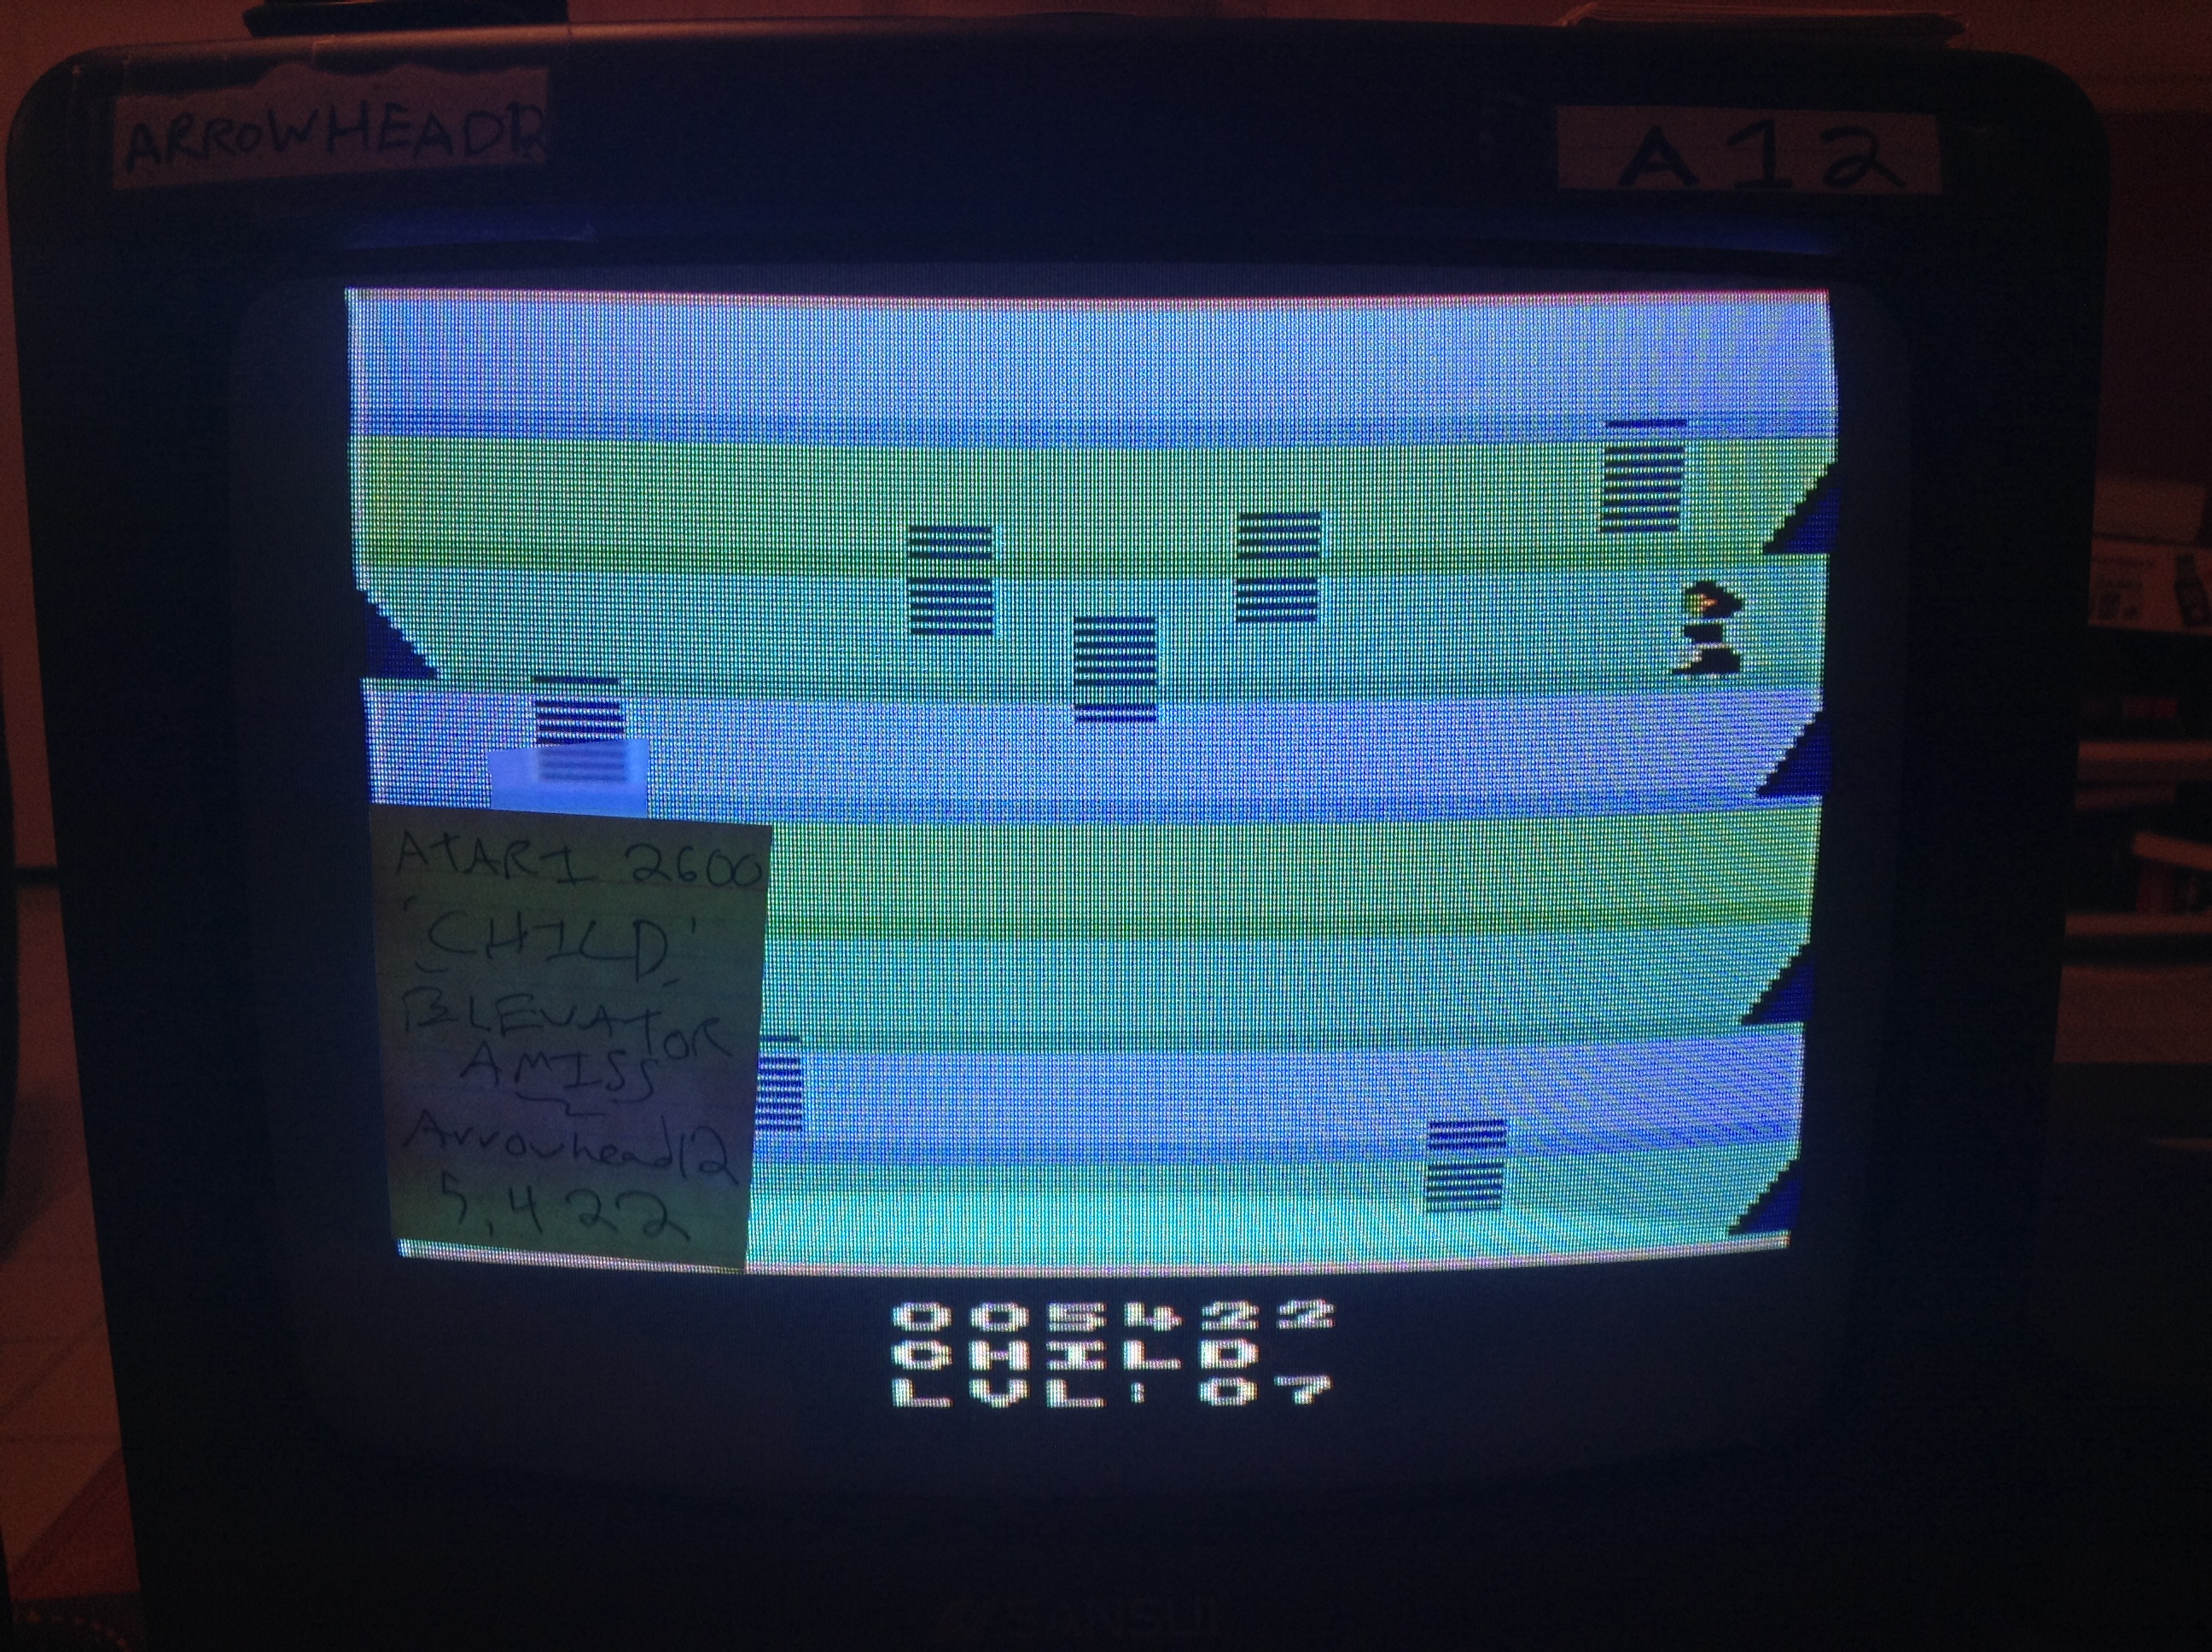 Arrowhead12: Elevators Amiss [Child Mode] (Atari 2600 Novice/B) 5,422 points on 2019-01-05 03:47:07